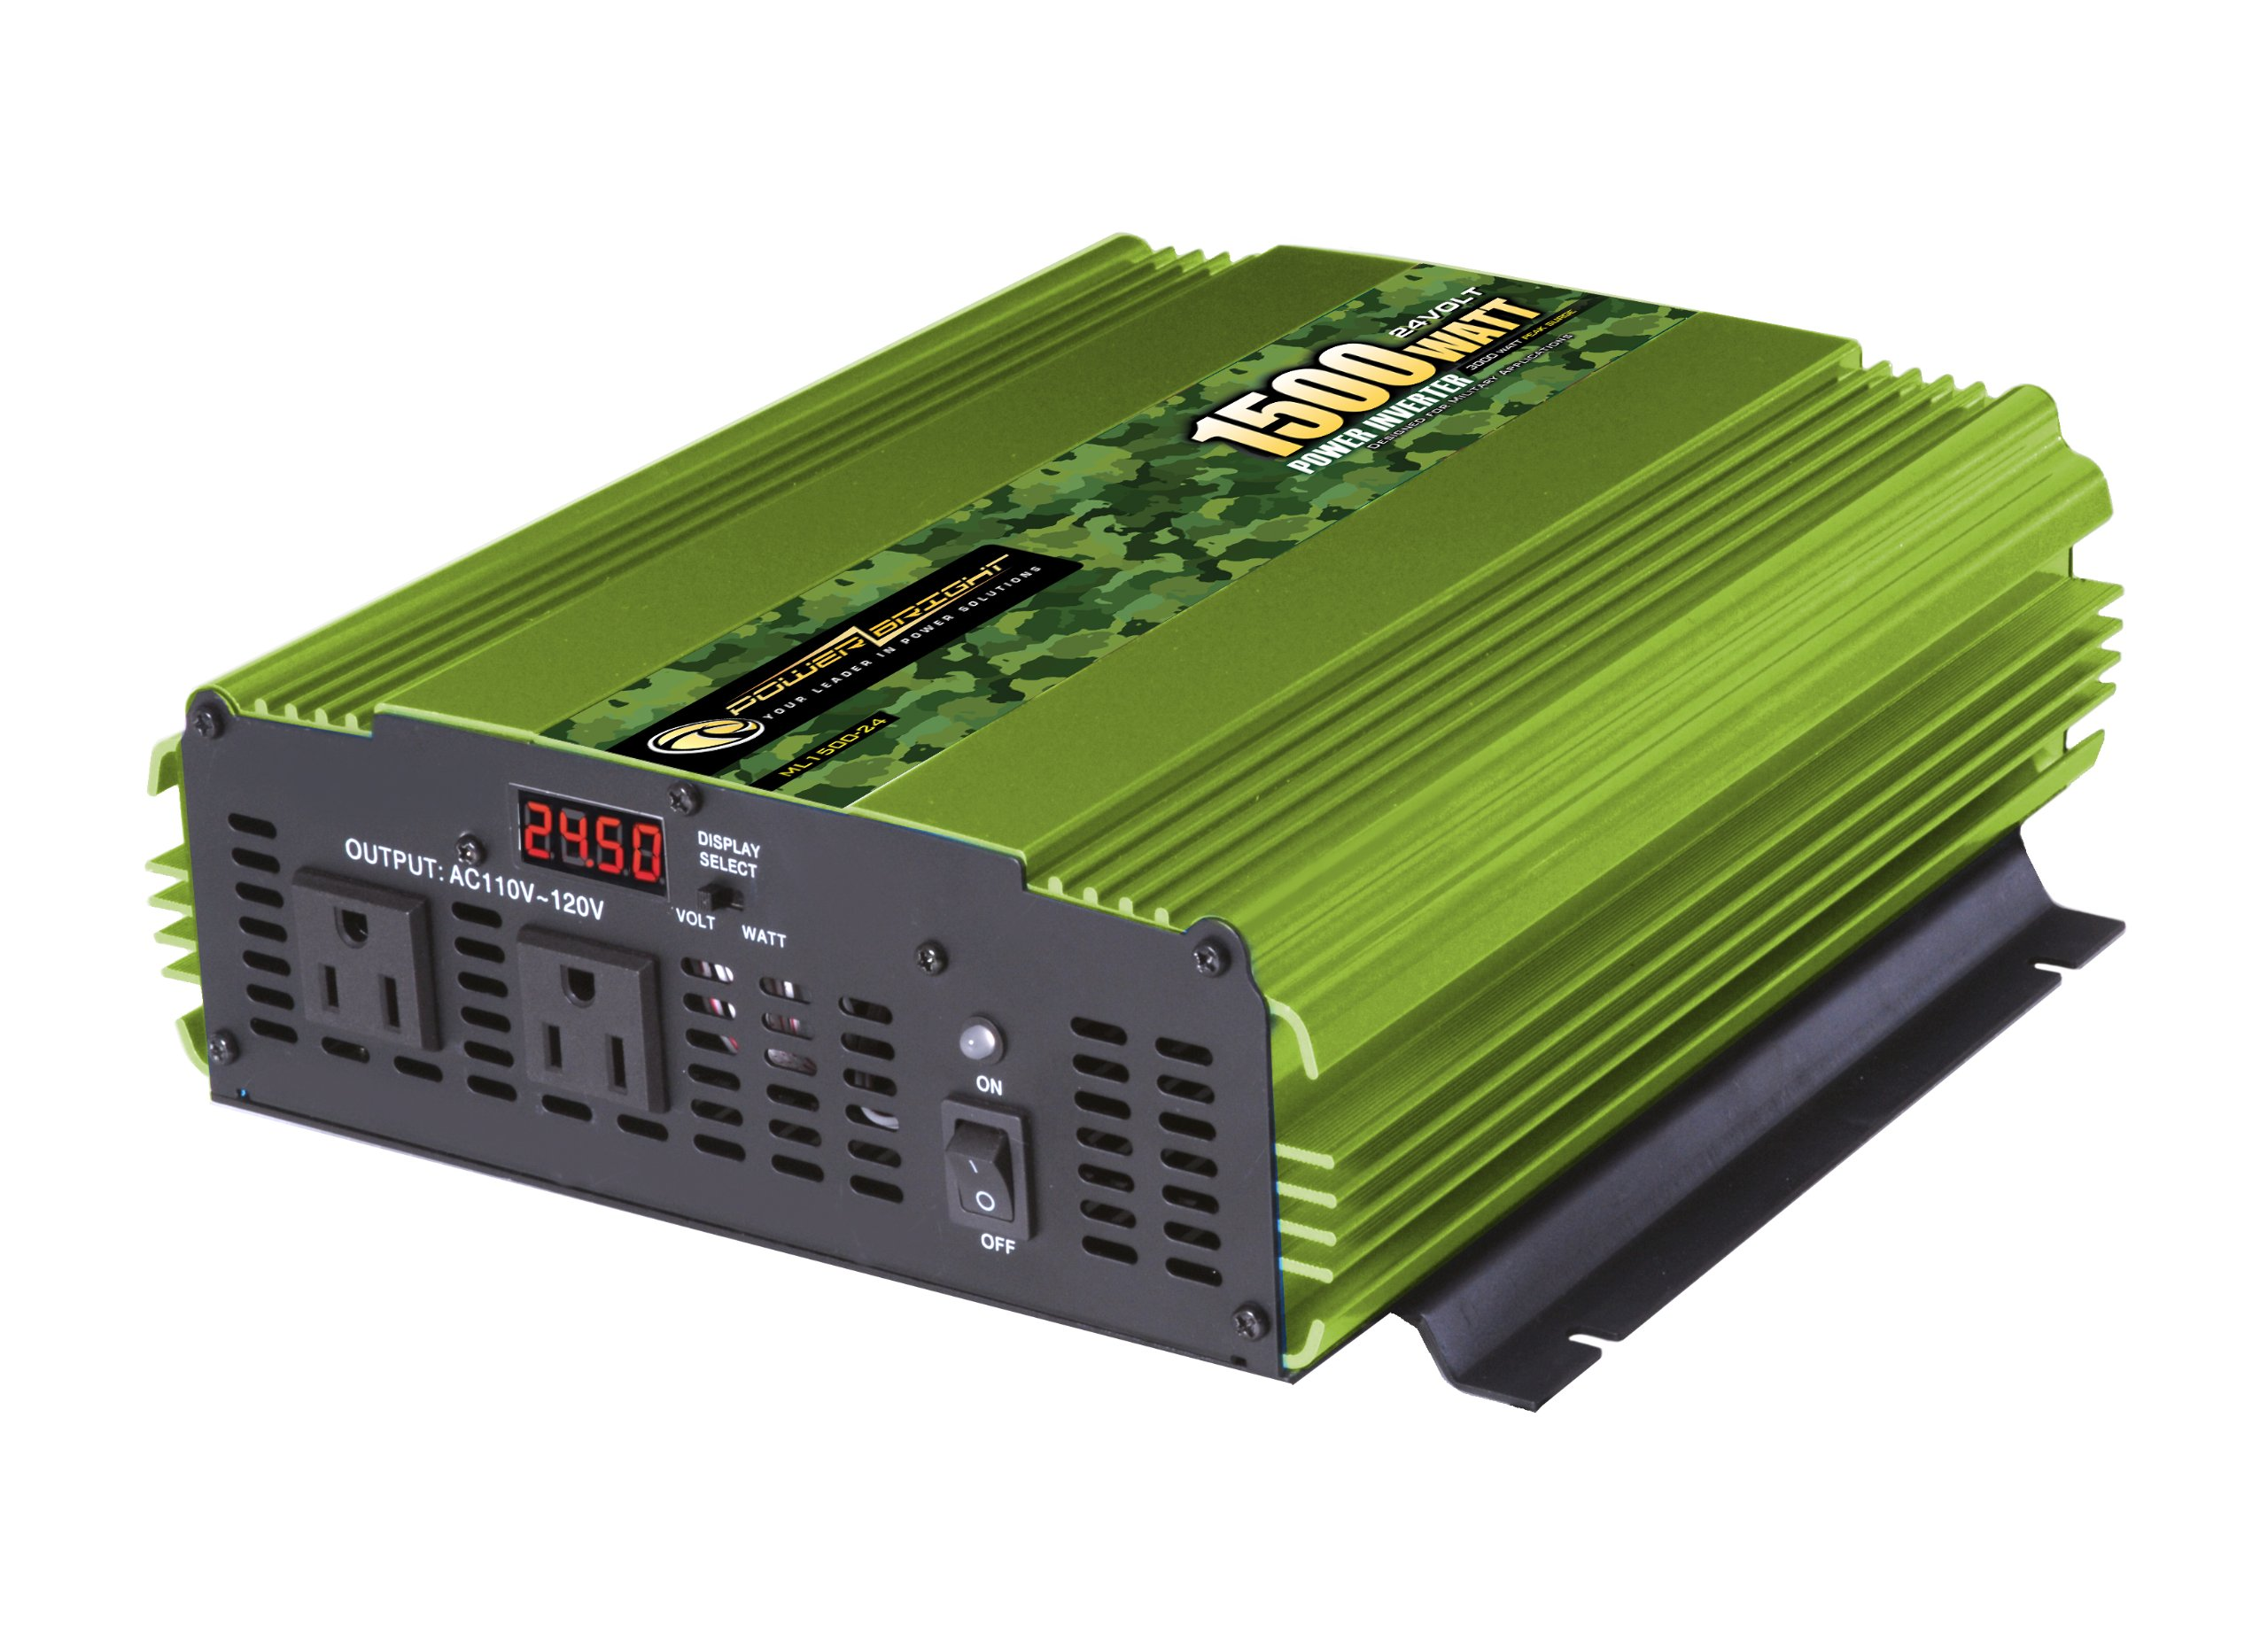 Power Bright ML1500-24 1500 Watt 24 Volt DC To 110 Volt AC Power Inverter